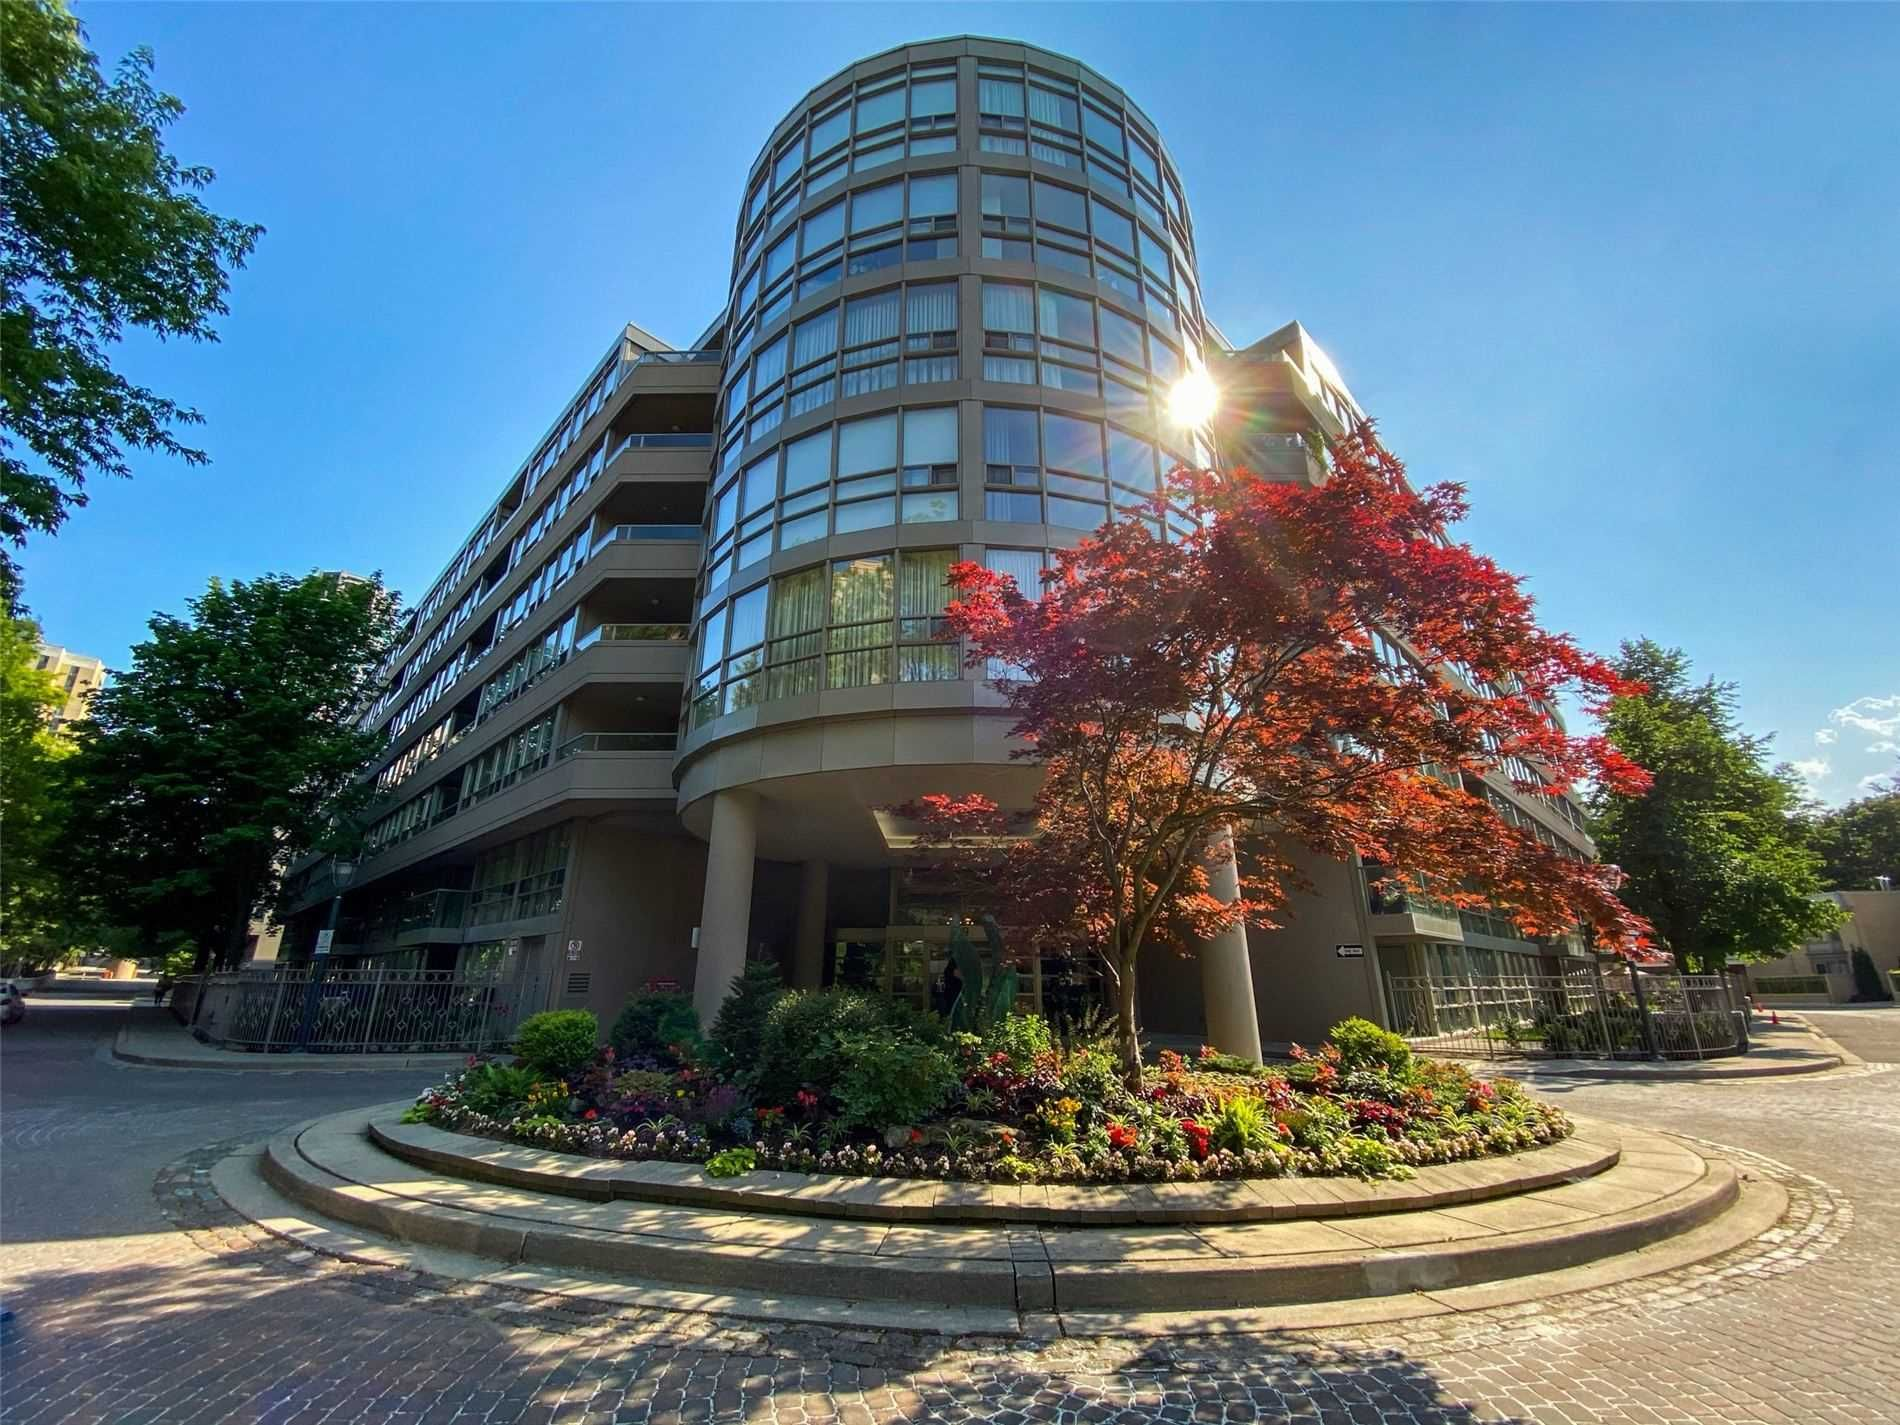 Main Photo: 612 19 Lower Village Gate in Toronto: Forest Hill South Condo for sale (Toronto C03)  : MLS®# C5121230